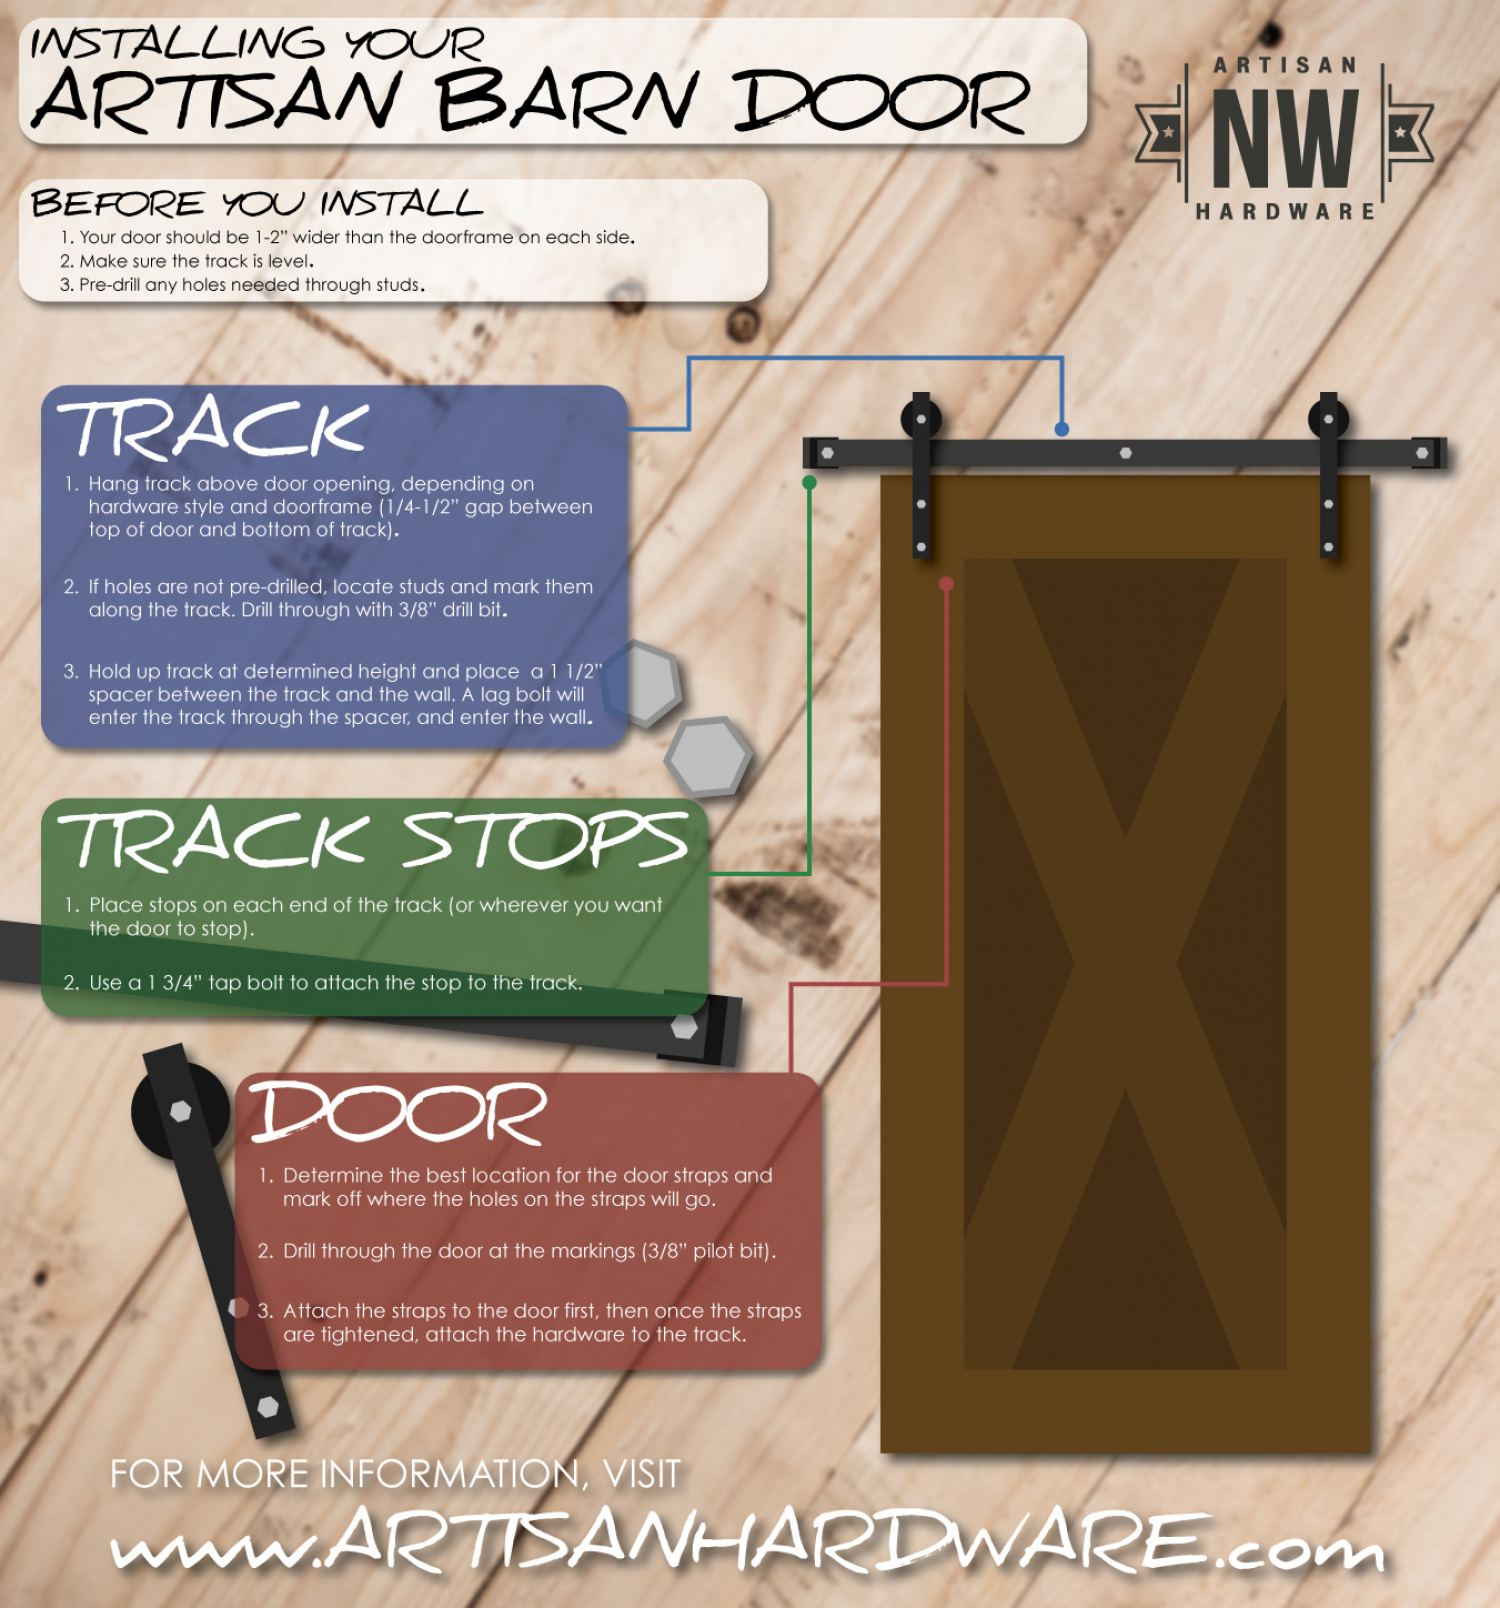 Installing Your Artisan Barn Door Infographic